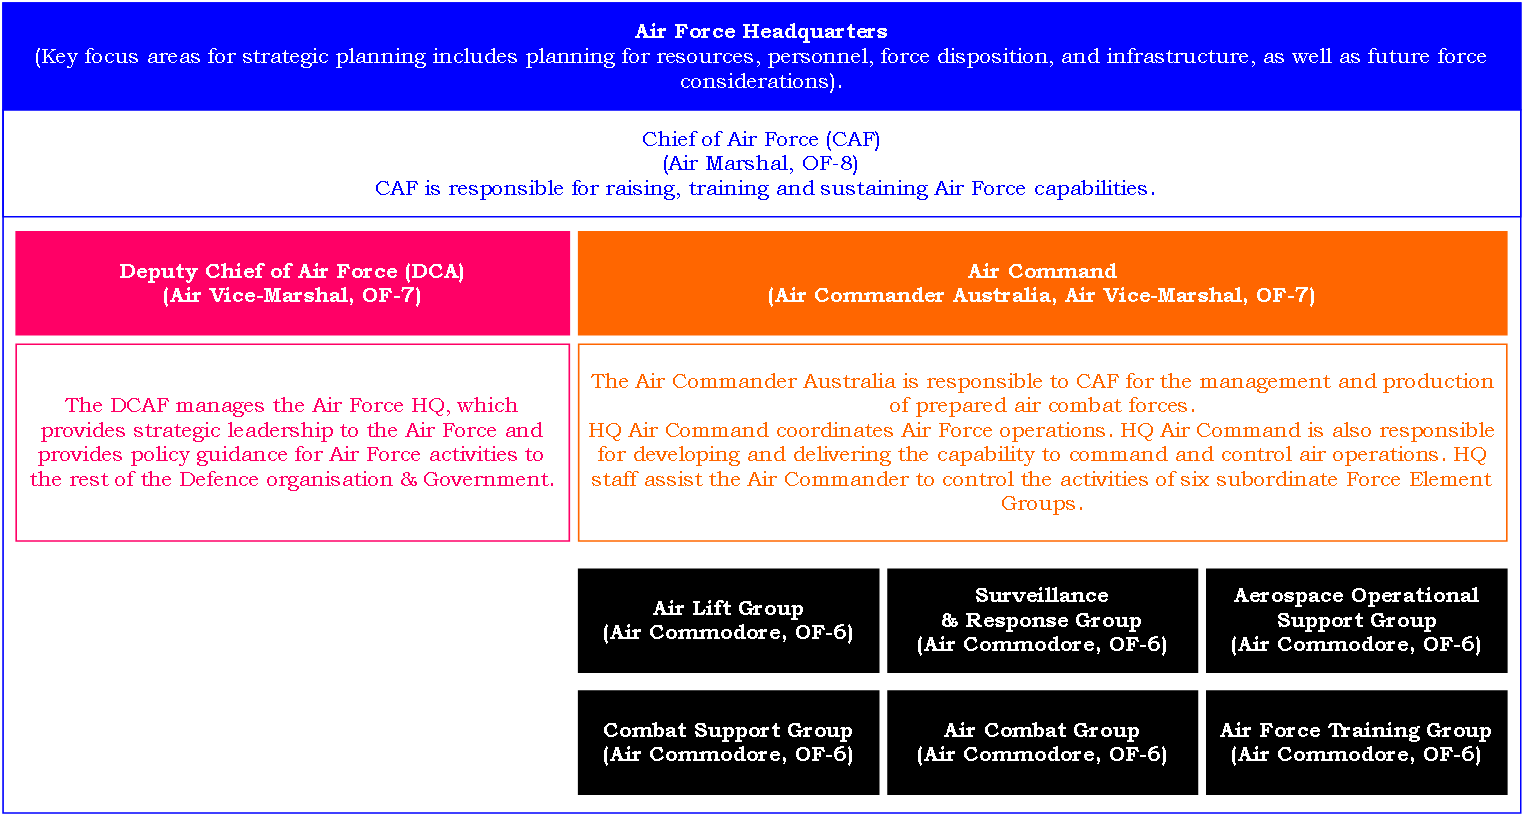 Figure 1: Structure of RAAF